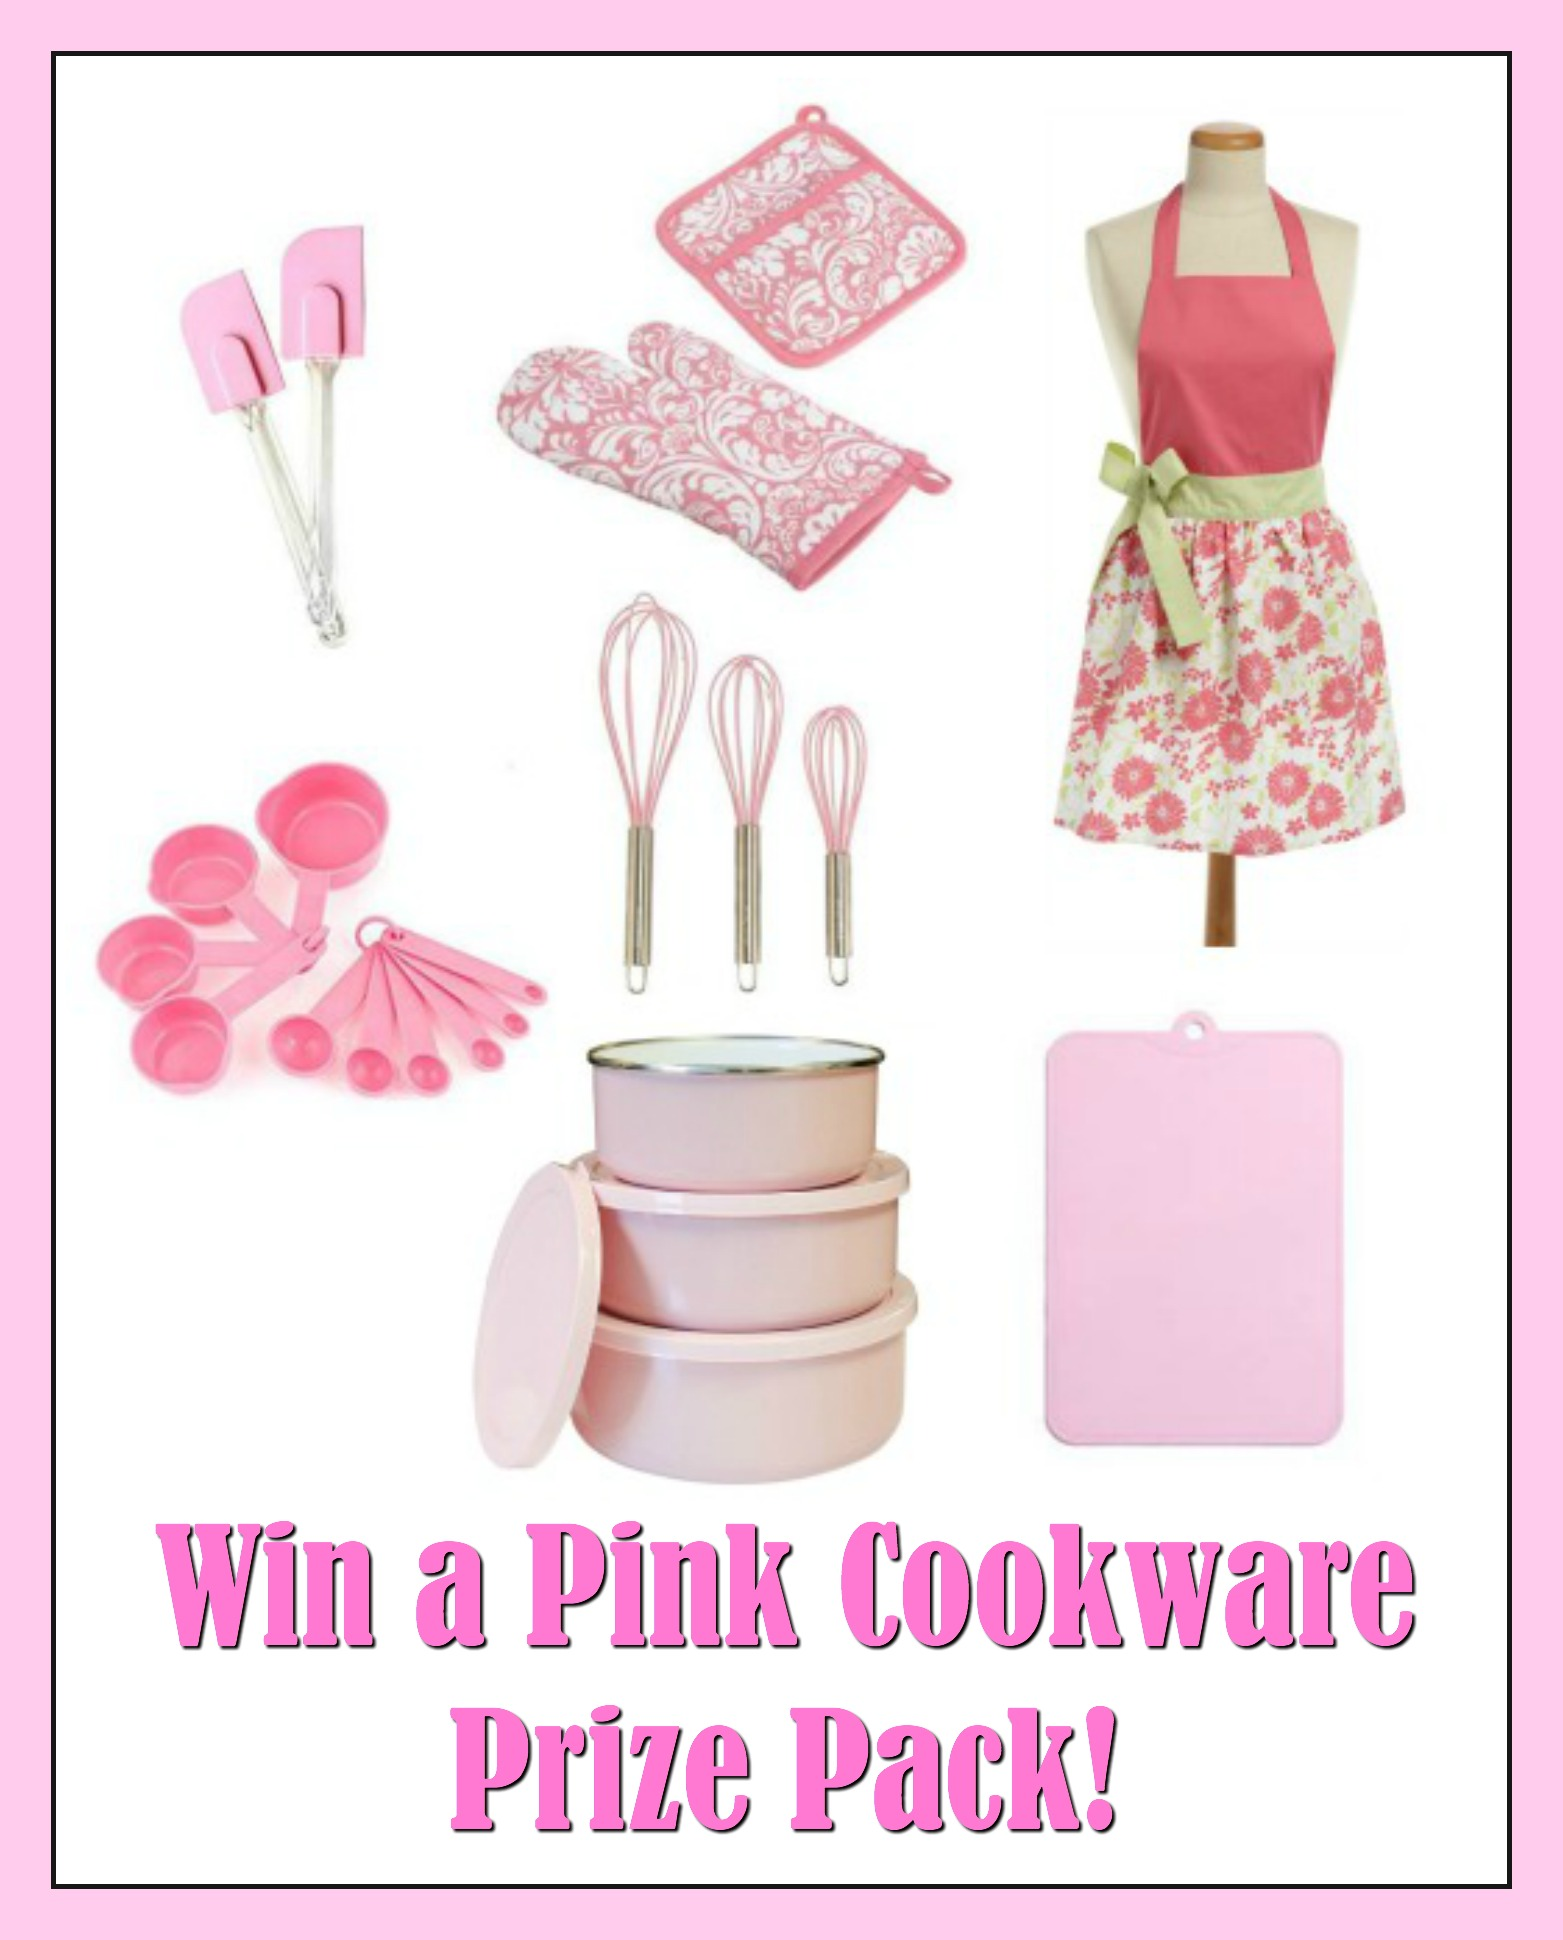 pink-cookware-prize